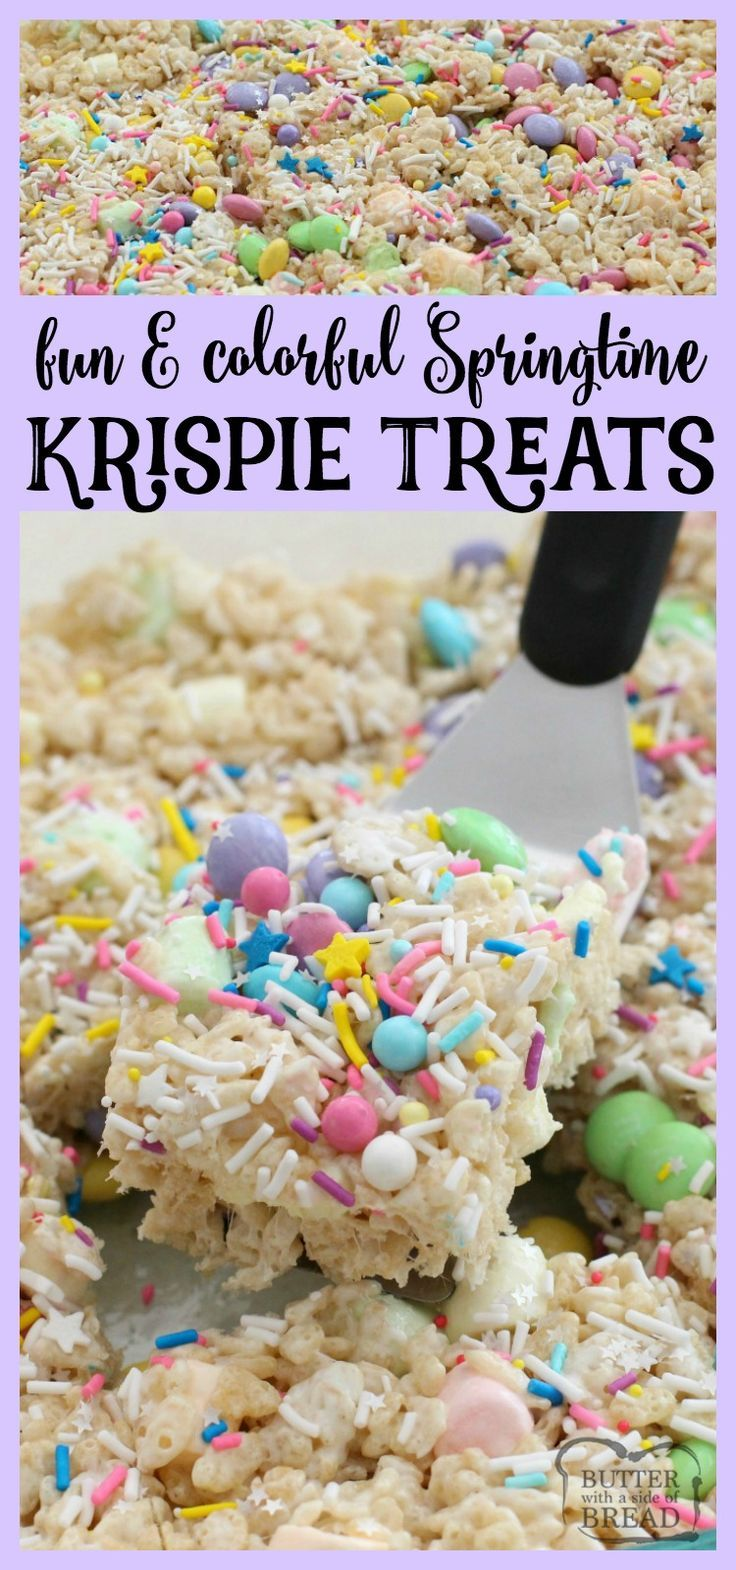 Super fun & easy to make, these Spring Krispie Treats are amazing! The extra butter and marshmallows helps too I'm sure. LOVE the added sprinkles! Easy dessert recipe from Butter With A Side of Bread via @ButterGirls